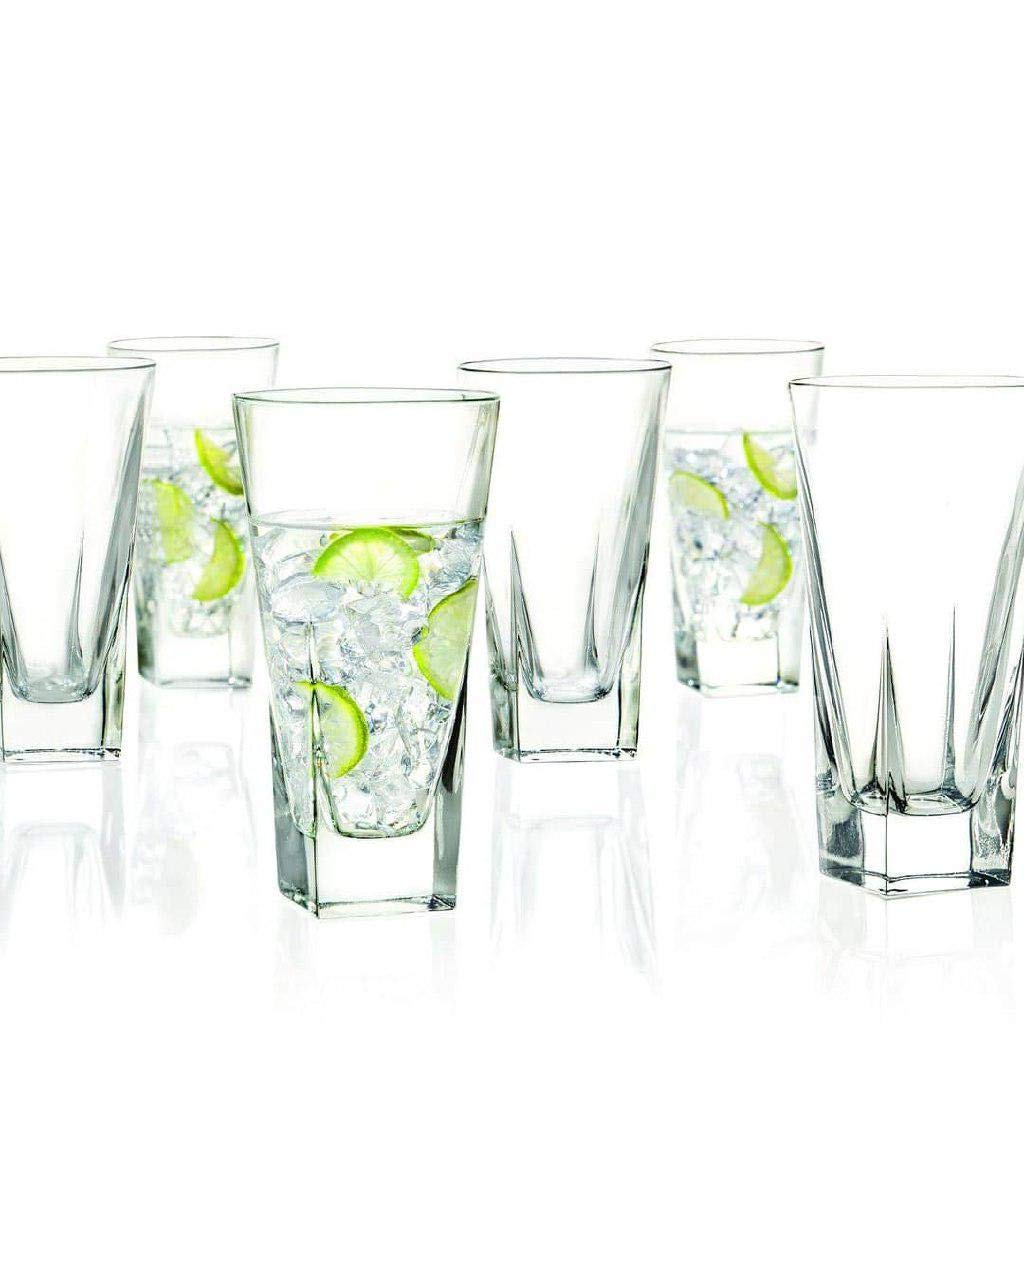 Le'raze Highball Glasses [Set of 6] Elegant Drinking Cups for Water, Wine, Beer, Cocktails and Mixed Drinks | Round Top, Square Bottom Glassware Set